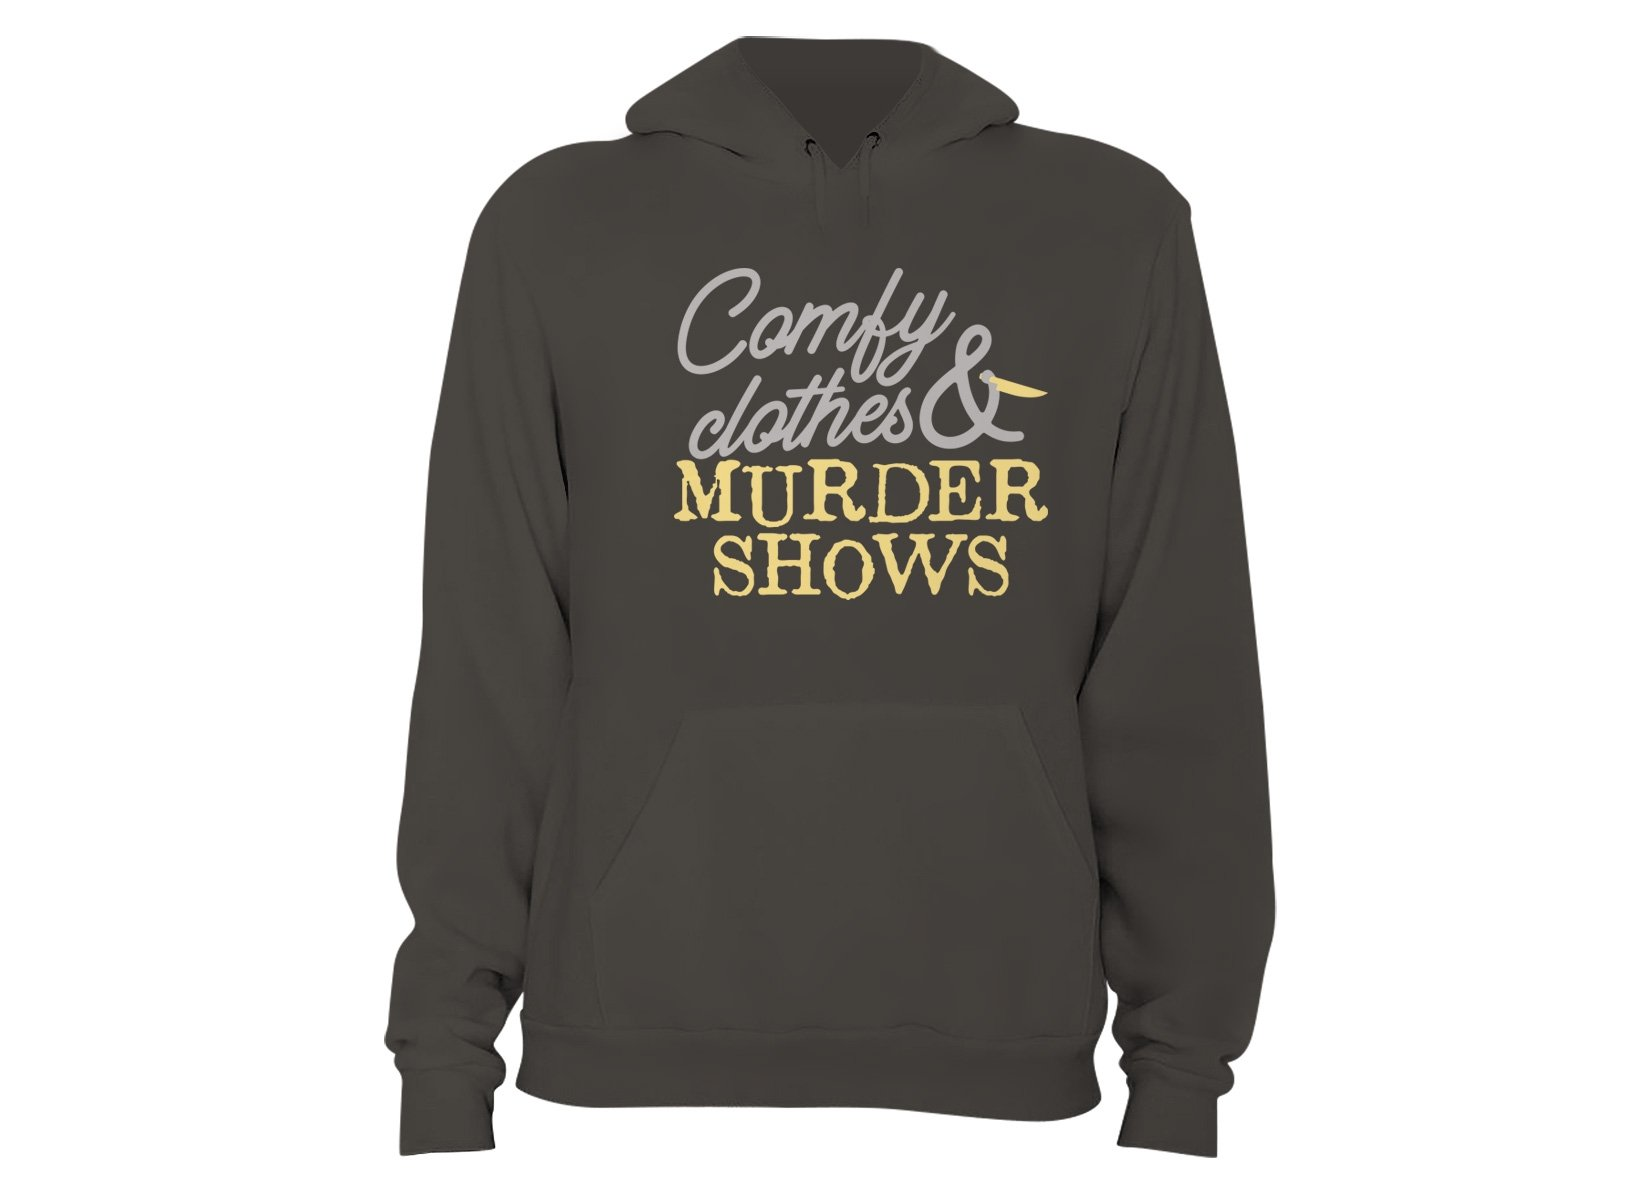 Comfy Clothes & Murder Shows on Hoodie